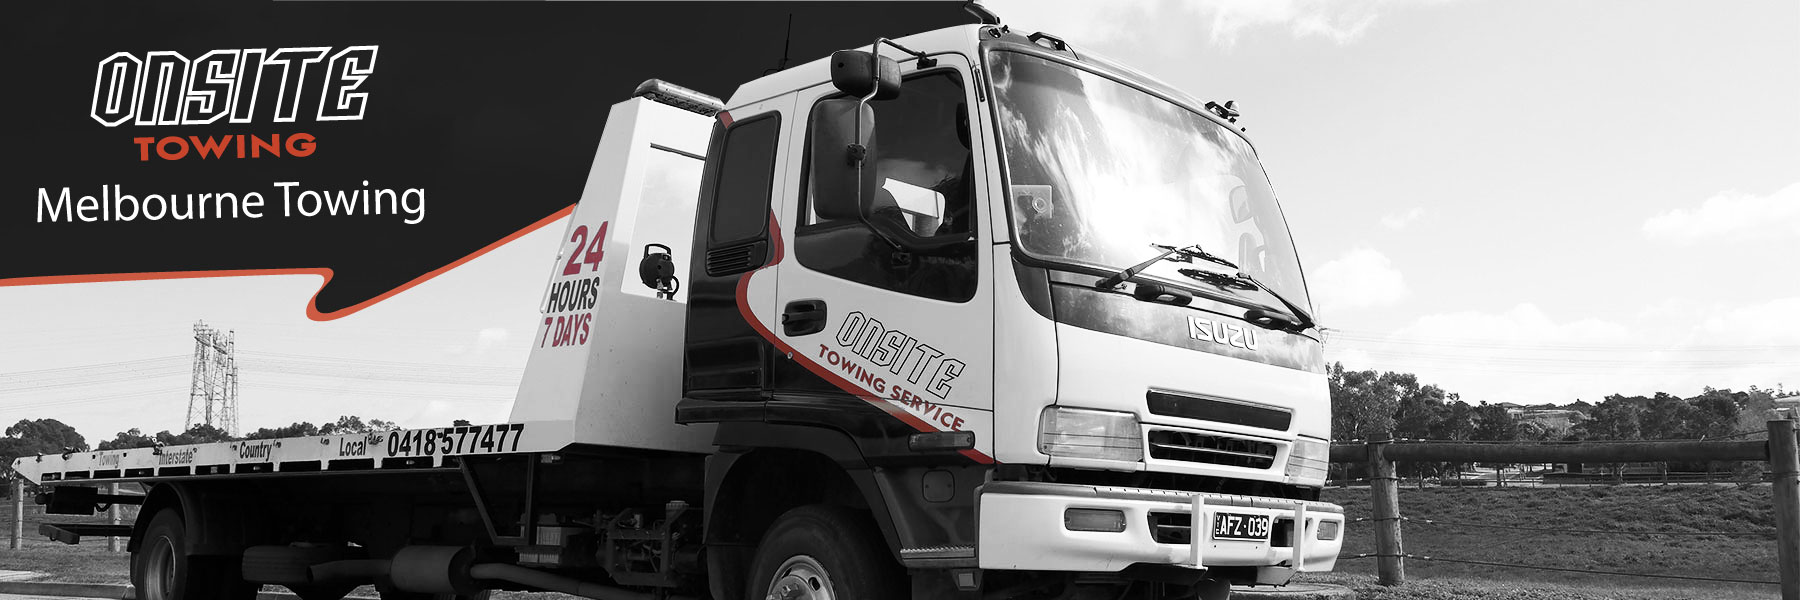 Melbourne Towing - Onsite Towing Areas Serviced